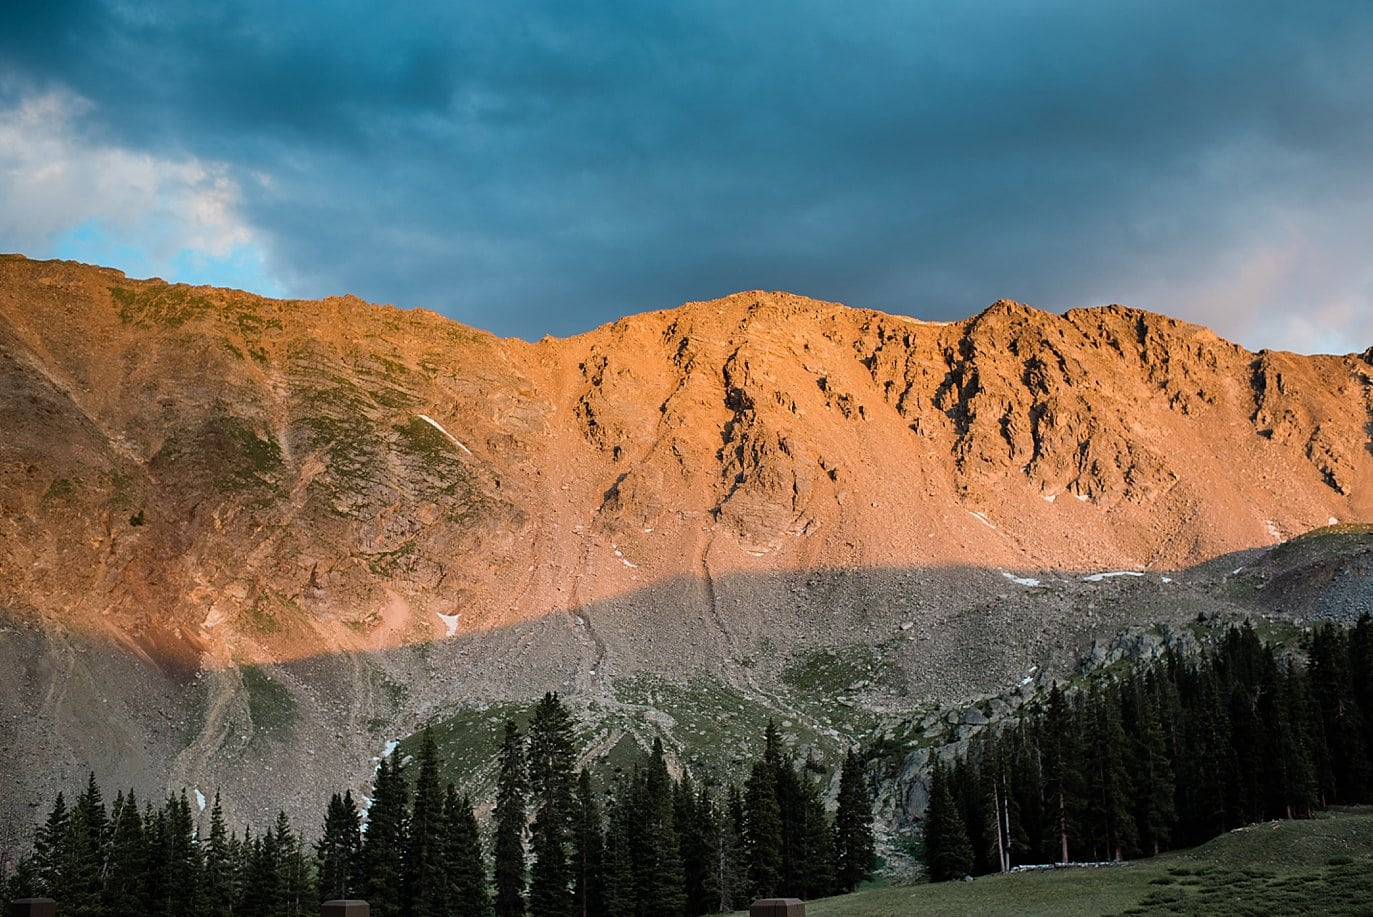 alpenglow Arapahoe Basin sunset at Arapahoe Basin wedding by Vail wedding photographer